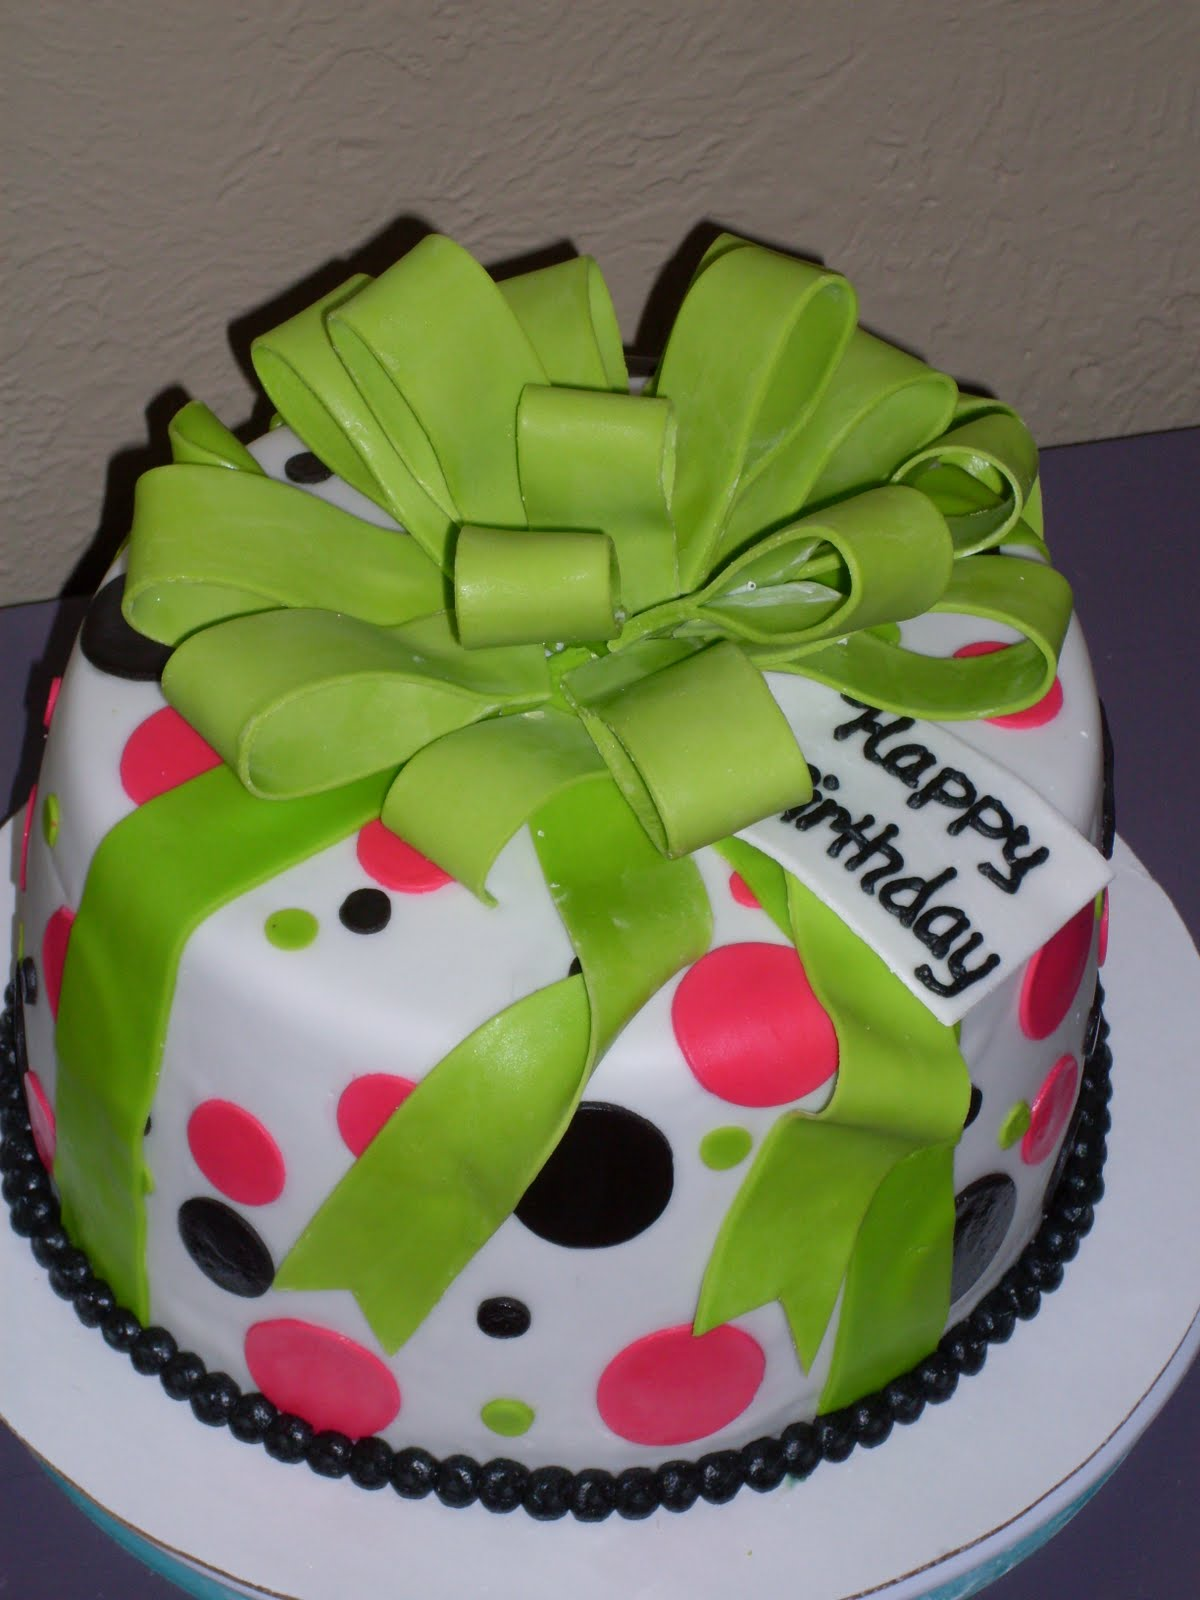 Kaci's Cake Delight: Happy Birthday, Emily